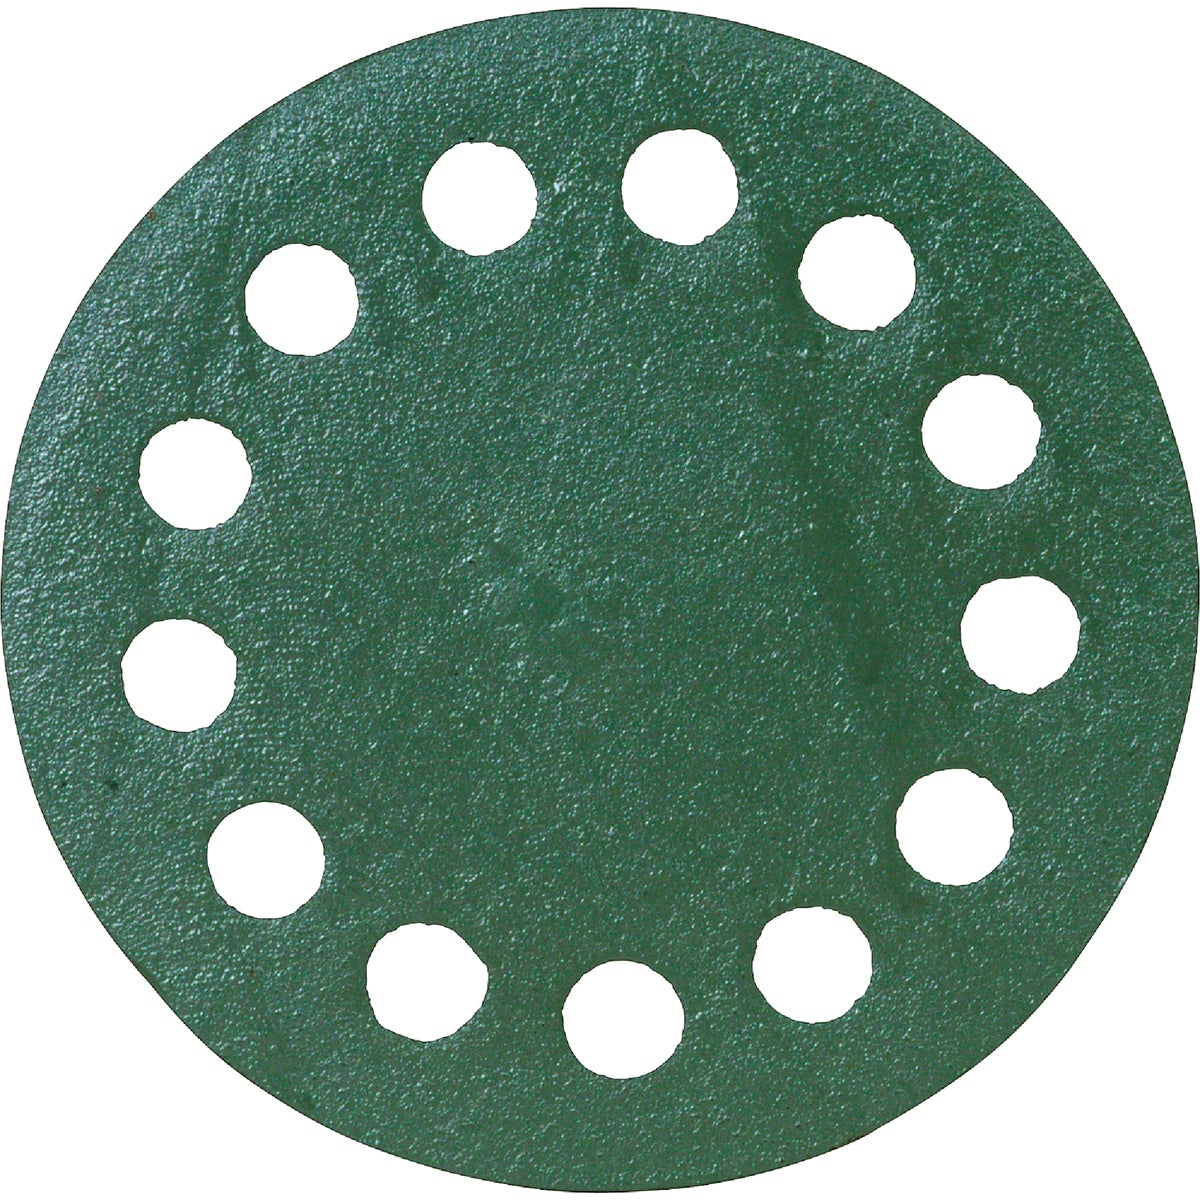 6-3/4 CAST IRON STRAINER - 866-S3I by Sioux Chief Mfg